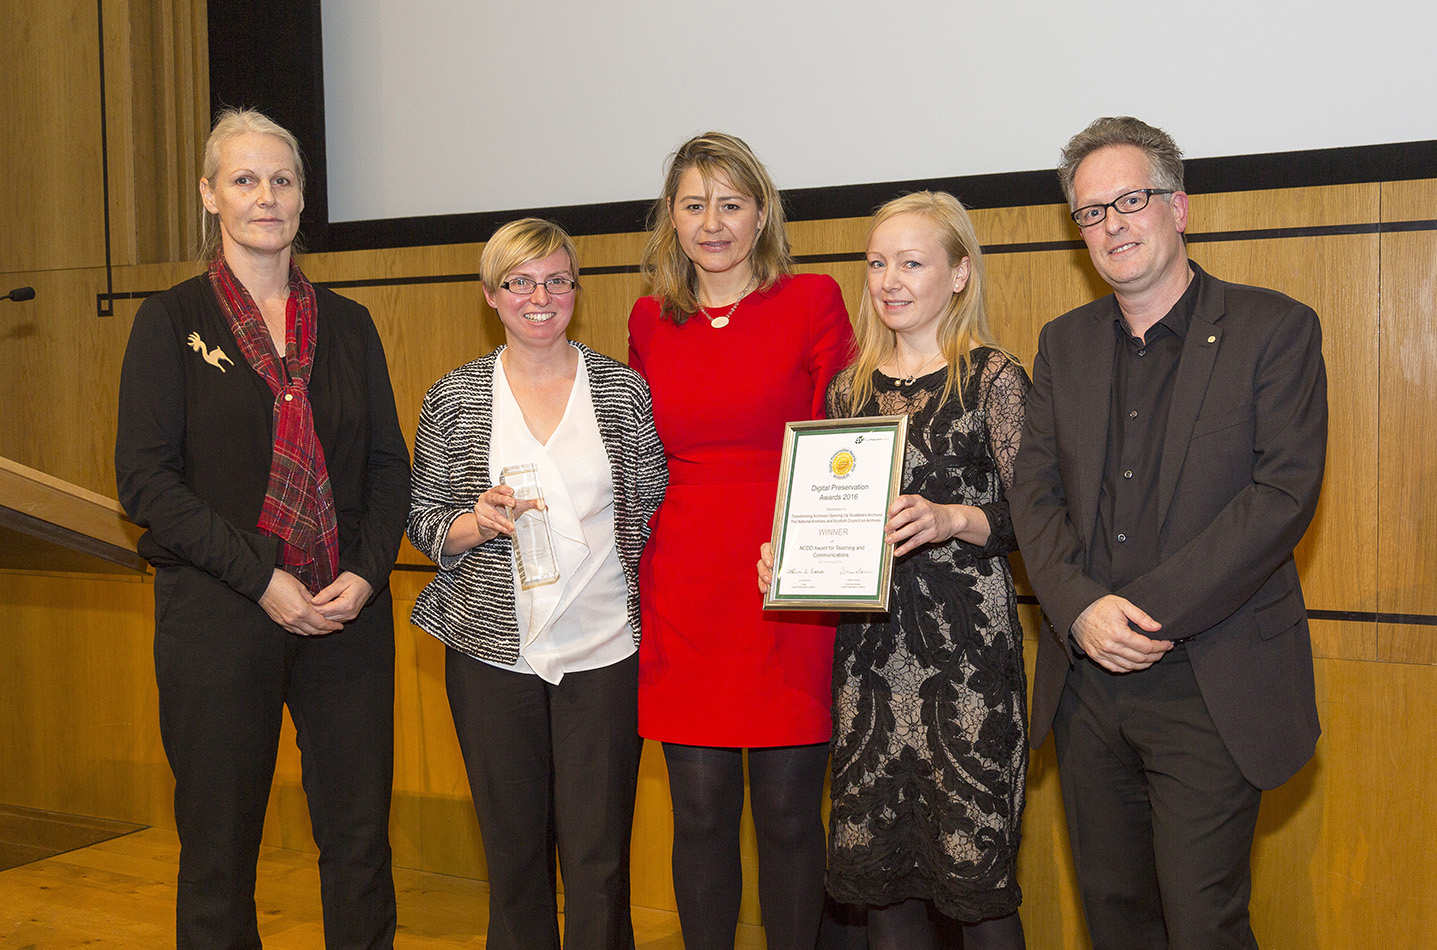 Skills for the Future Archival traineeships recognised in